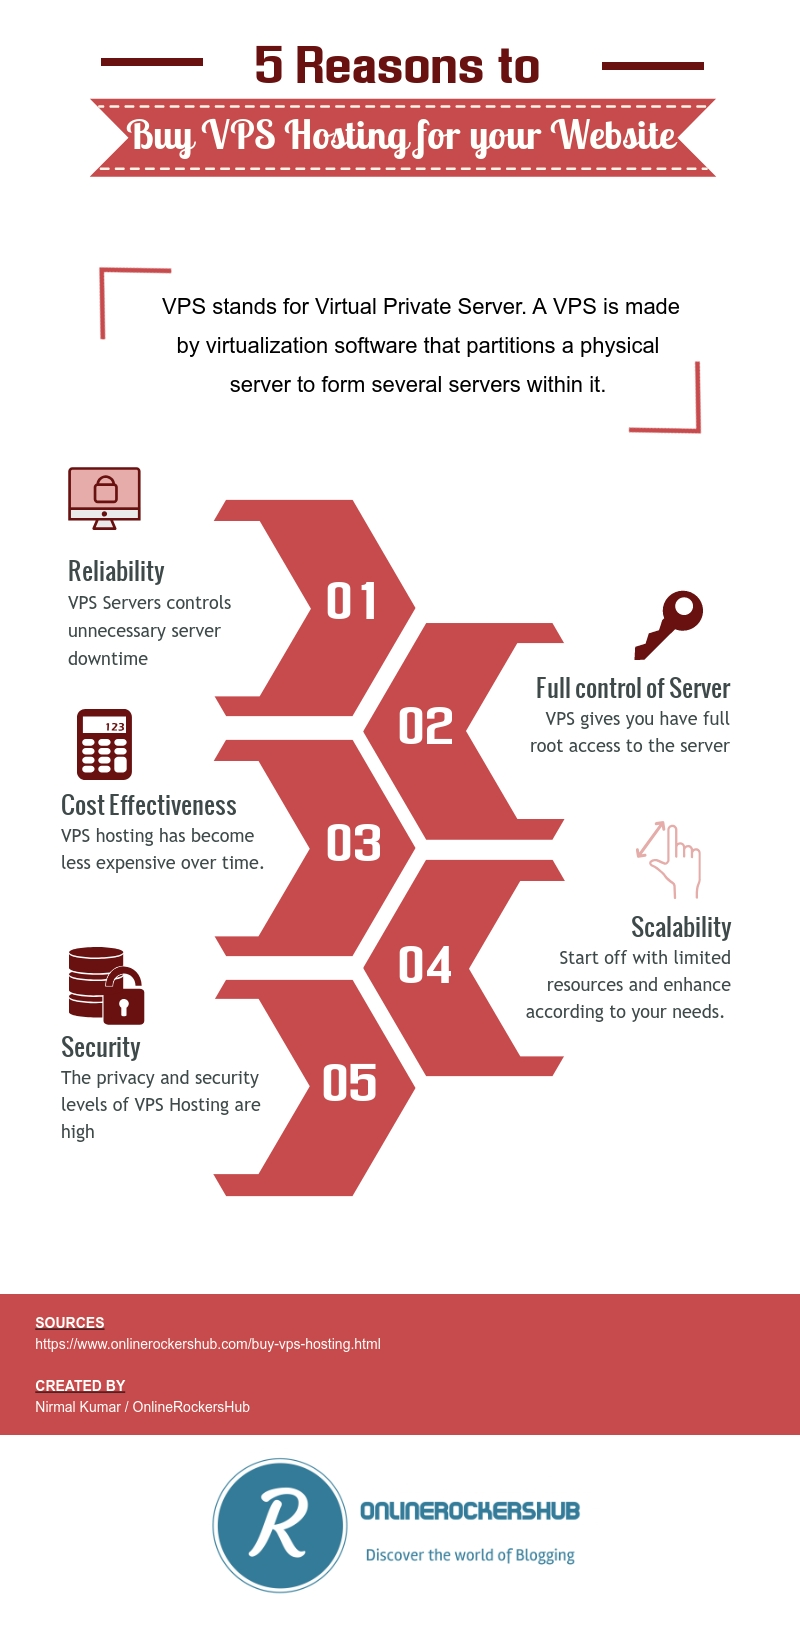 Five reasons why you need to buy VPS Hosting for your website Infographic